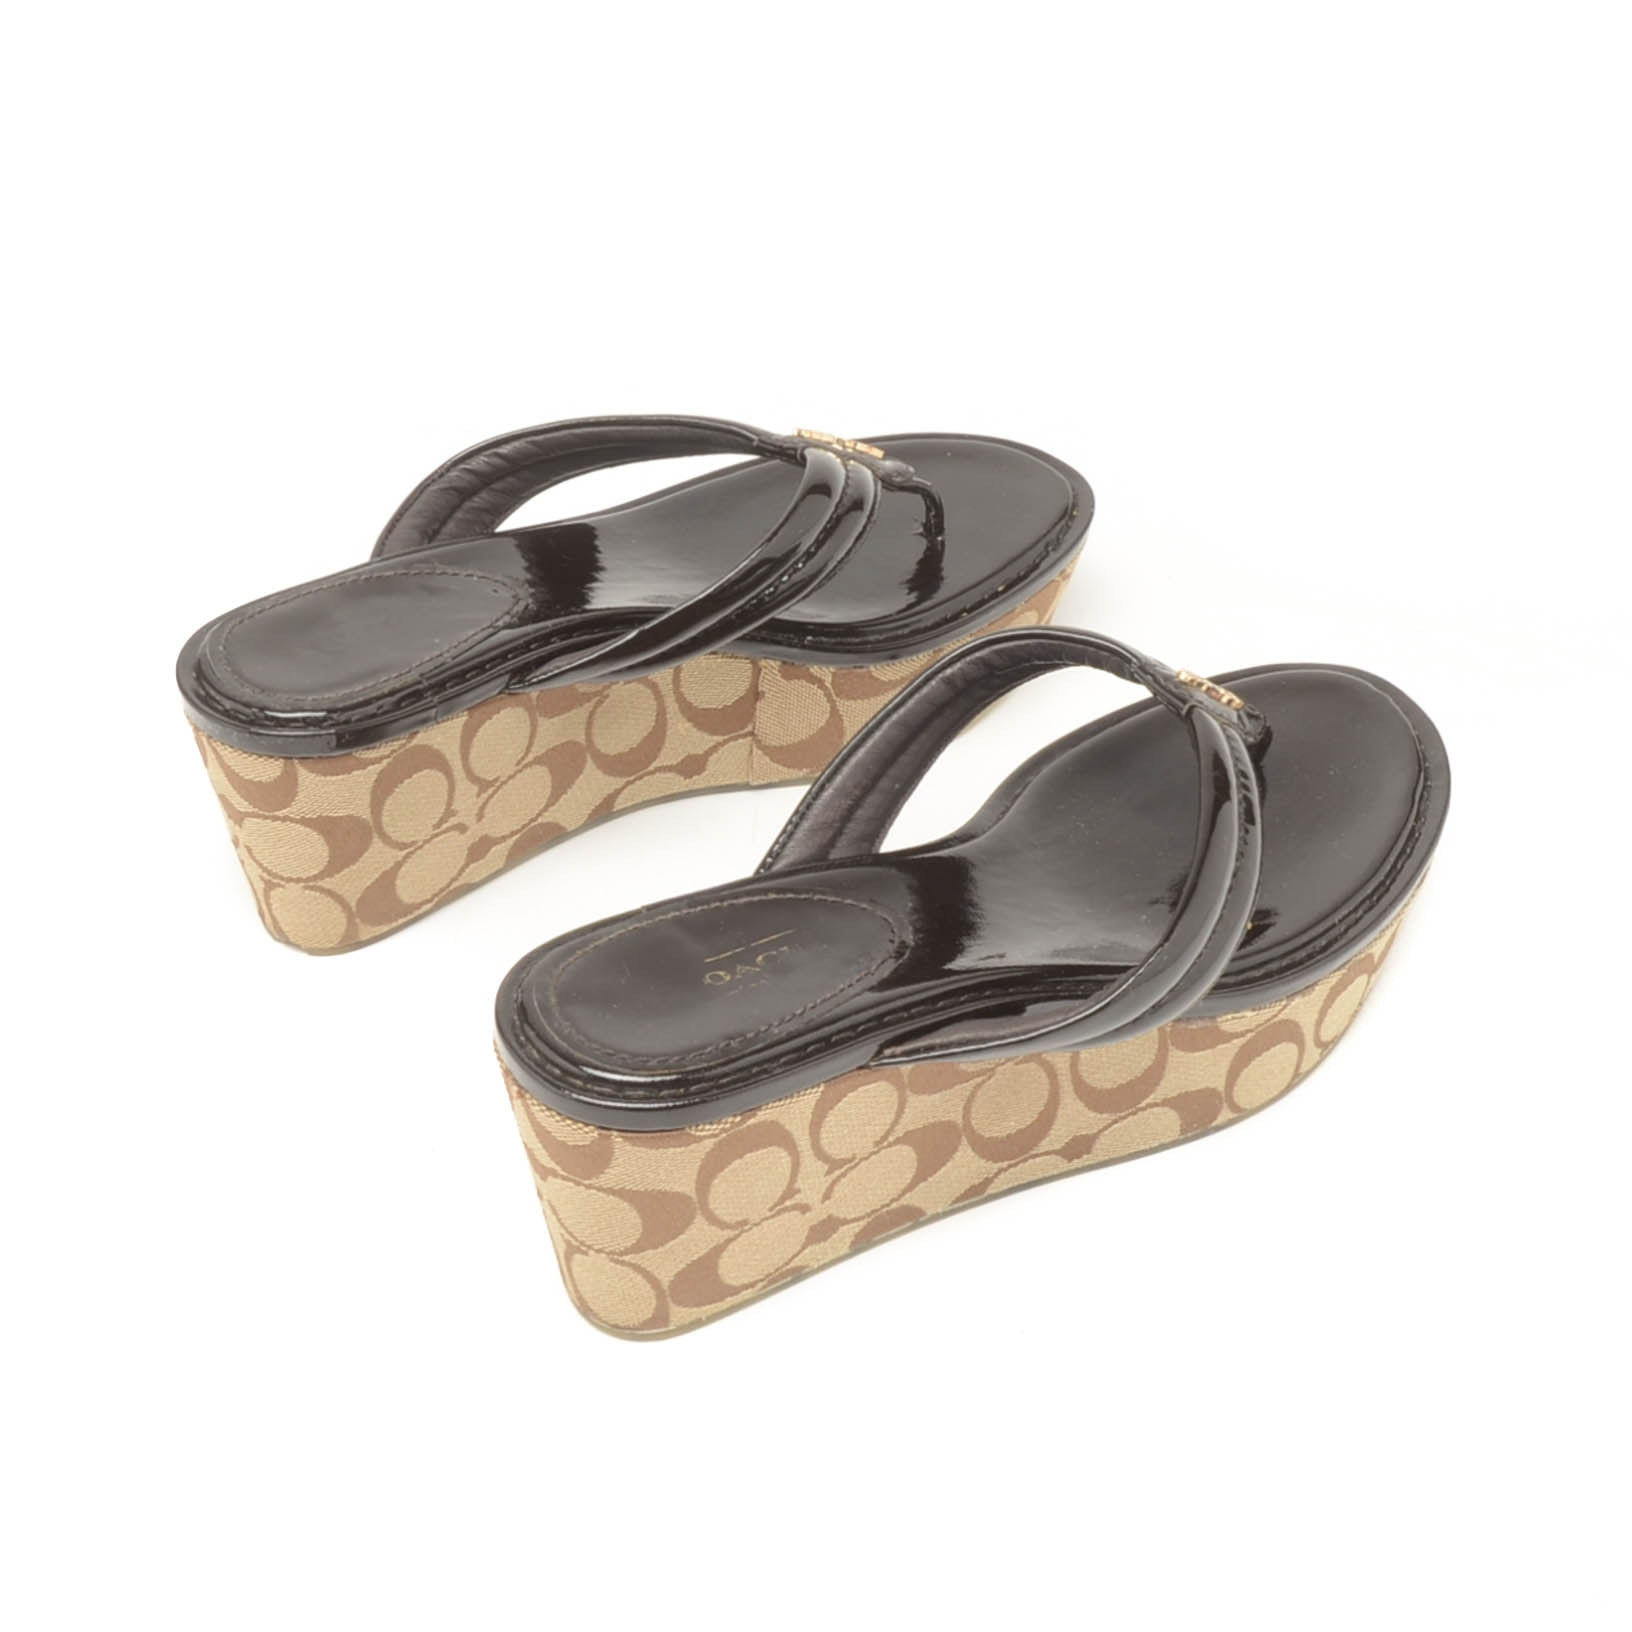 Coach Platform Black Patent Leather and Jacquard Canvas Sandals